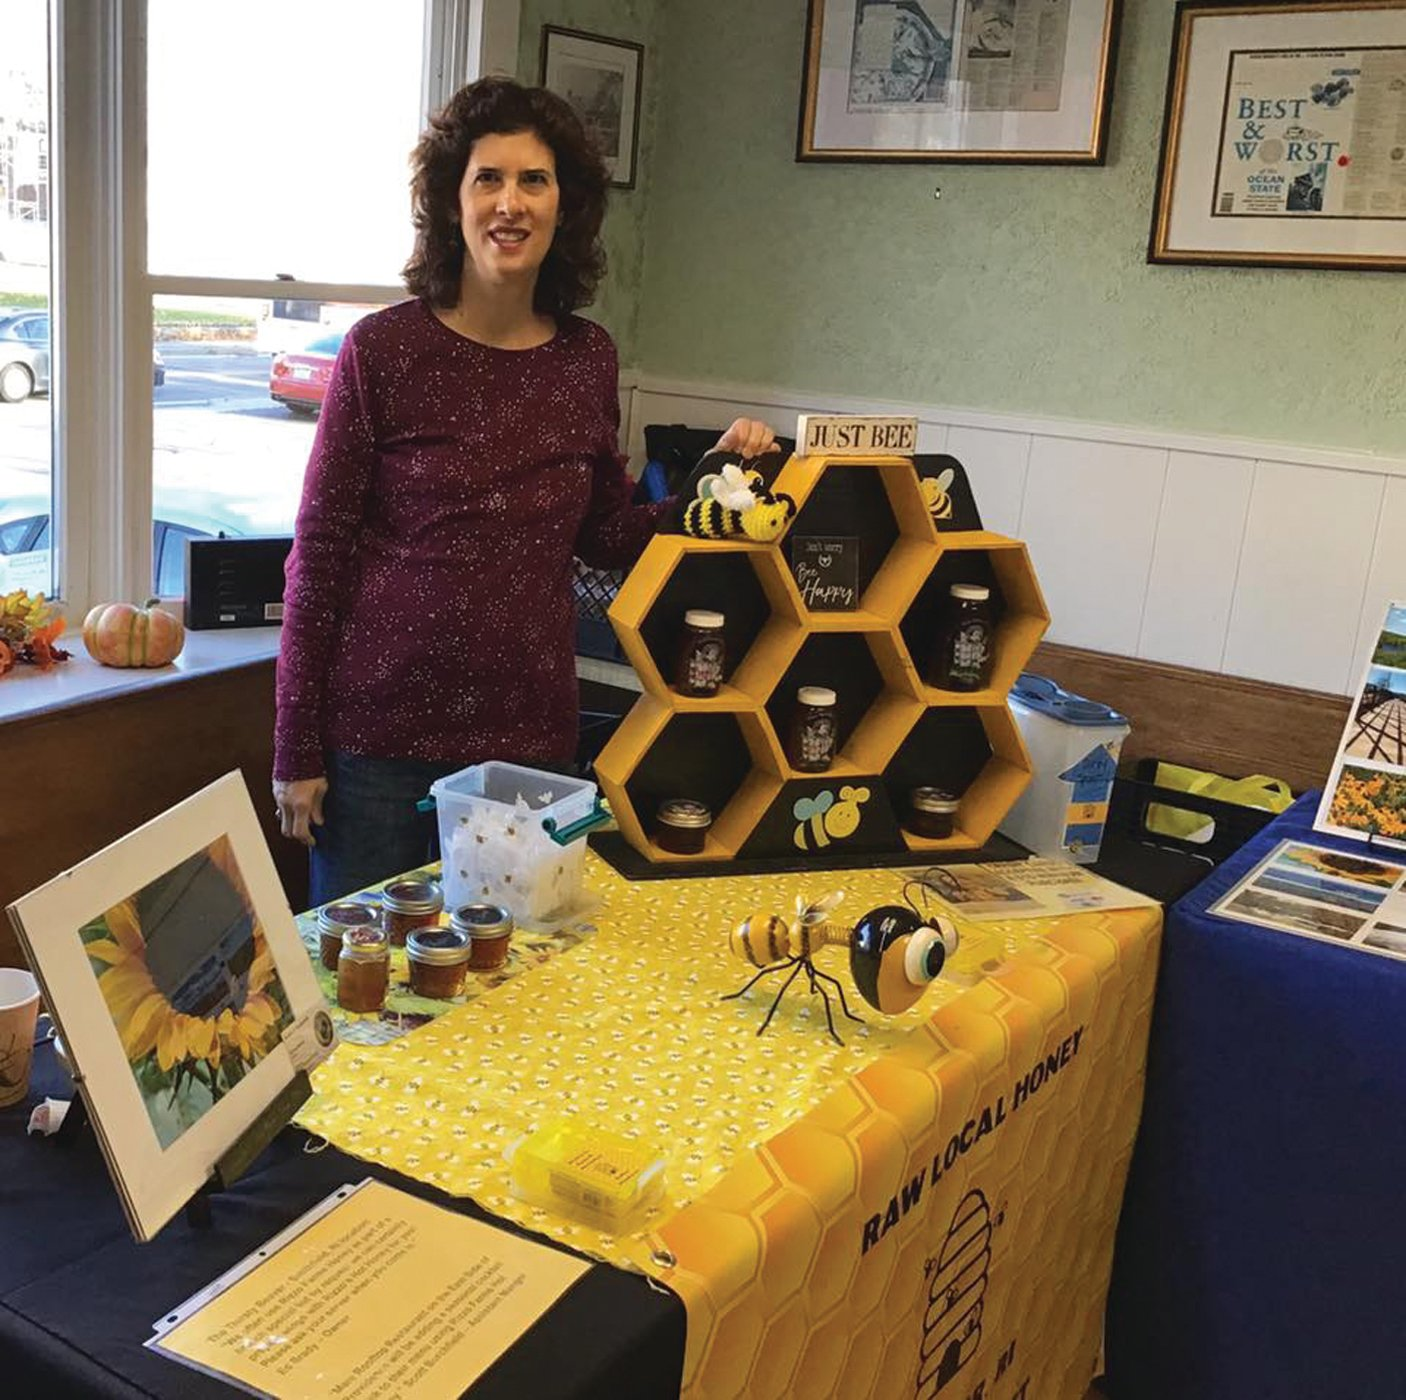 BUY LOCAL: Sue Baron is pictured during indoor and outdoor markets, pre-COVID, selling Rizzo Farms honey. To purchase honey from Rizzo Farms, contact Baron at bbhoney@cox.net.